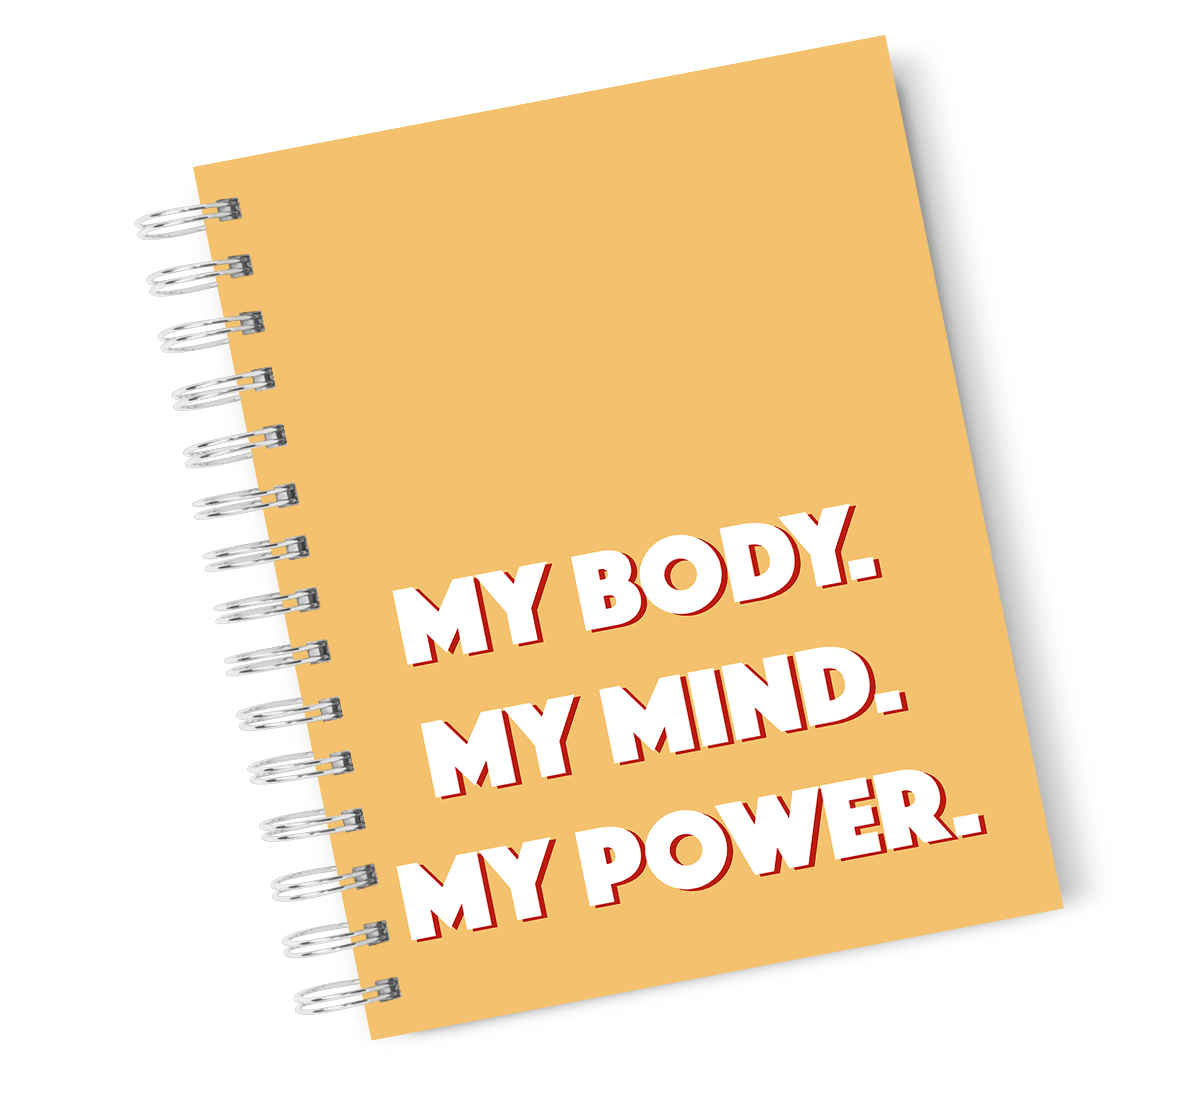 A4 Hardcover Notebook My Body Inspirational Mind Power Spiral Notebook with High Quality Bright White Paper